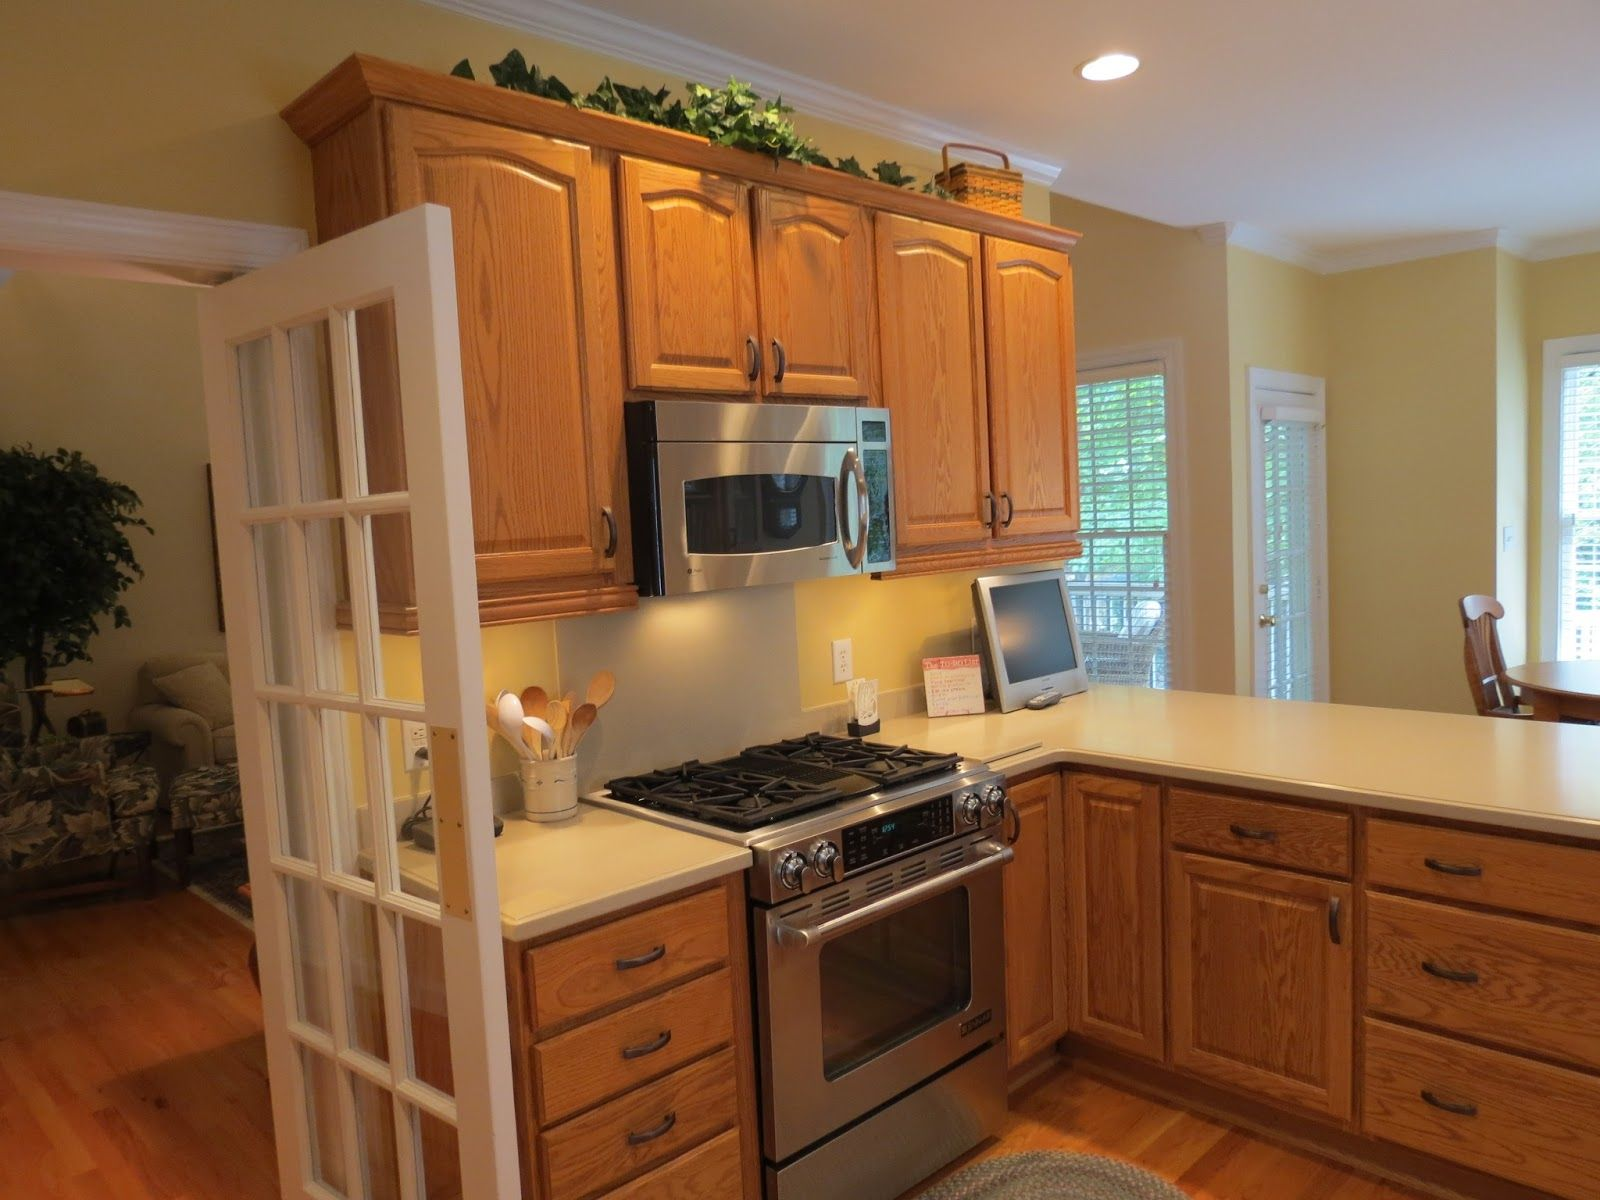 color ideas for kitchens with oak cabinets | http://sinhvienthienan